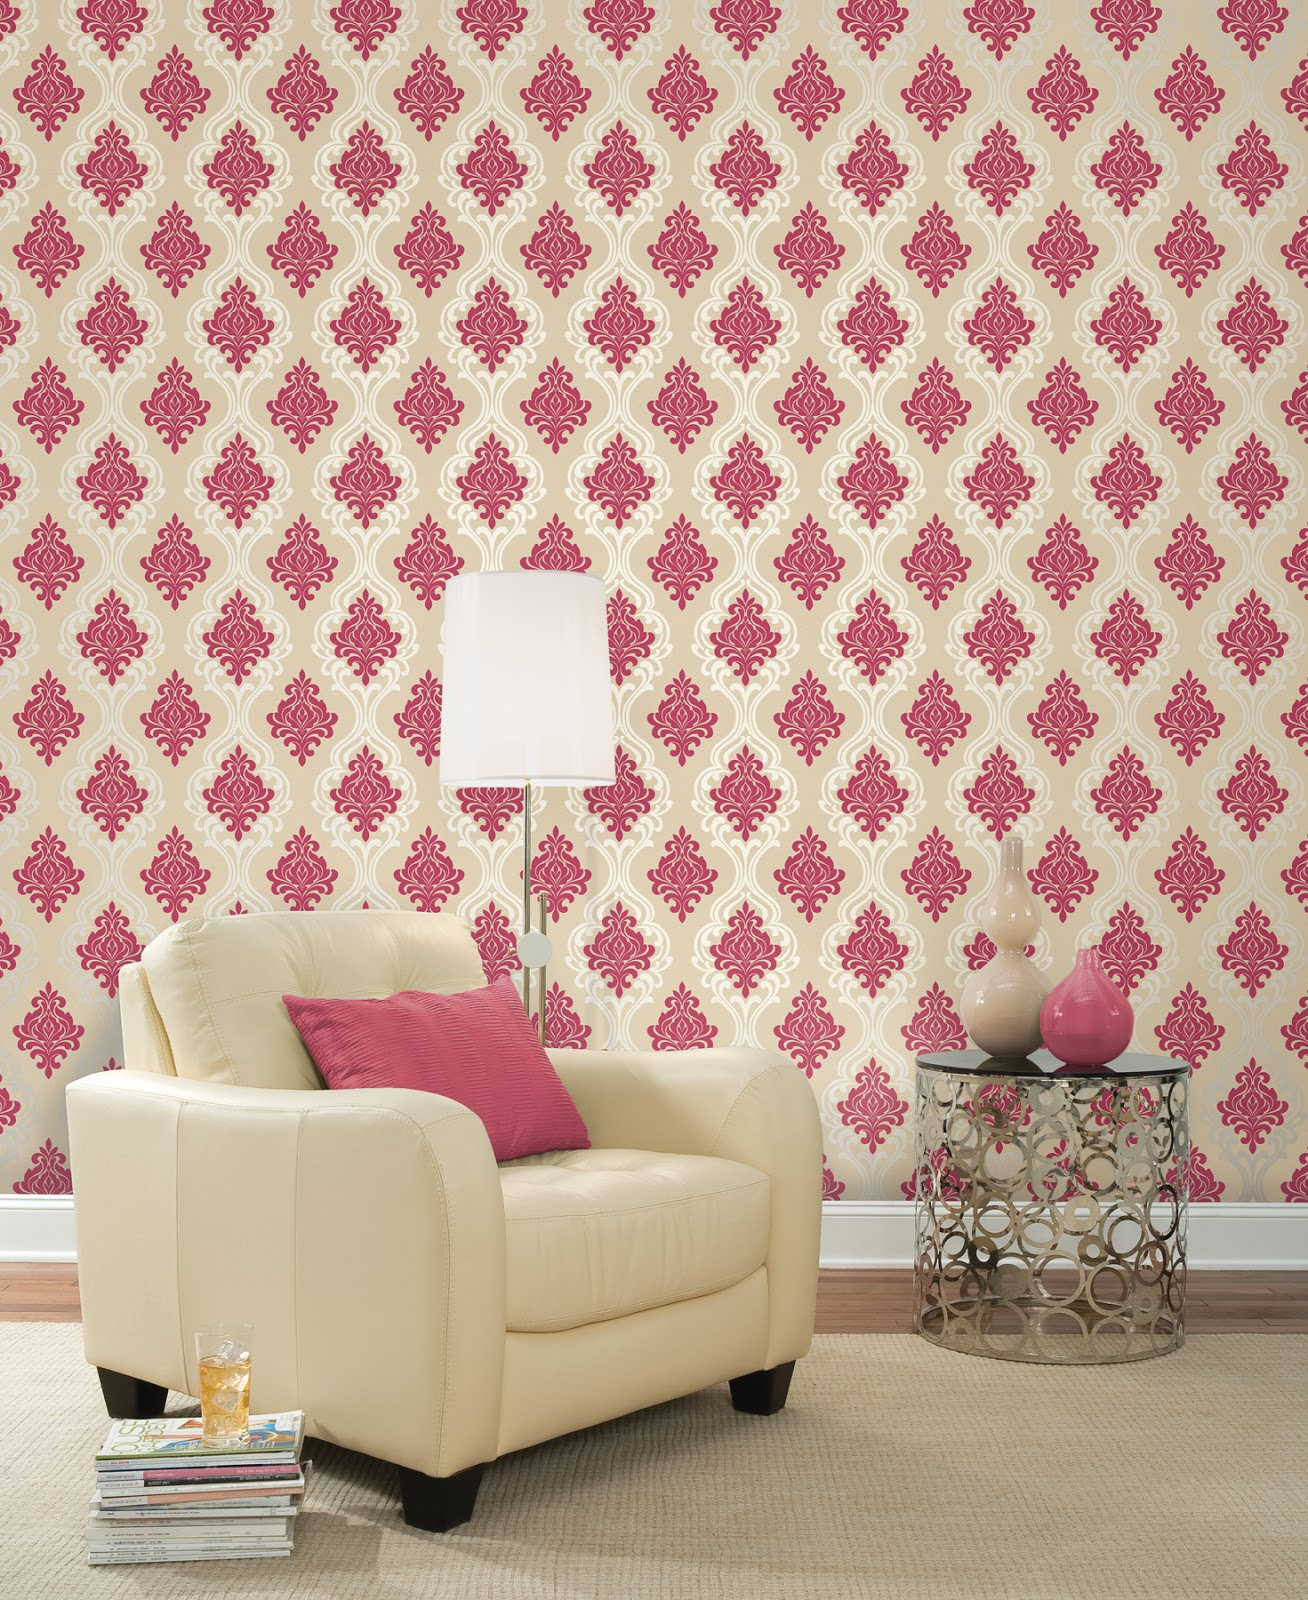 https://www.wallcoveringsforless.com/shoppingcart/prodlist1.CFM?page=_prod_detail.cfm&product_id=42670&startrow=13&search=2533&pagereturn=_search.cfm